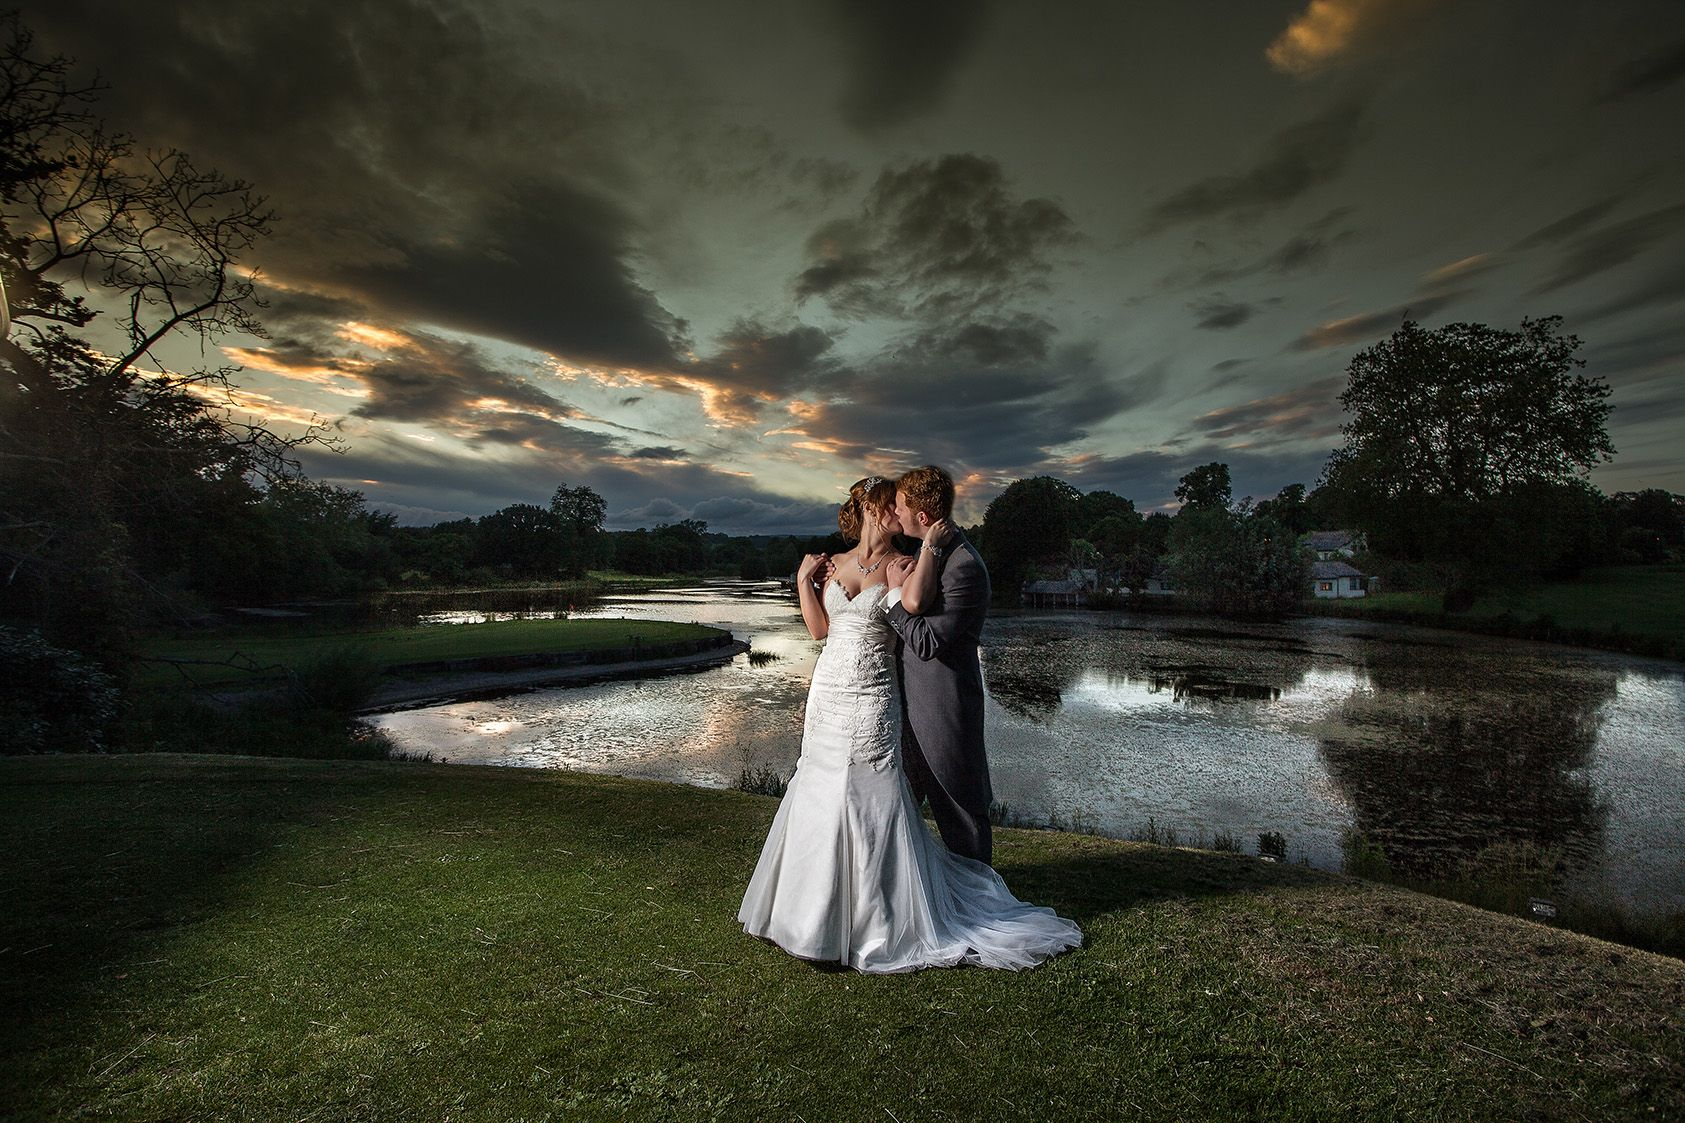 Wedding Photography Under 500: Dramatic Sky, Under Exposed Ambient, Flash To Make The